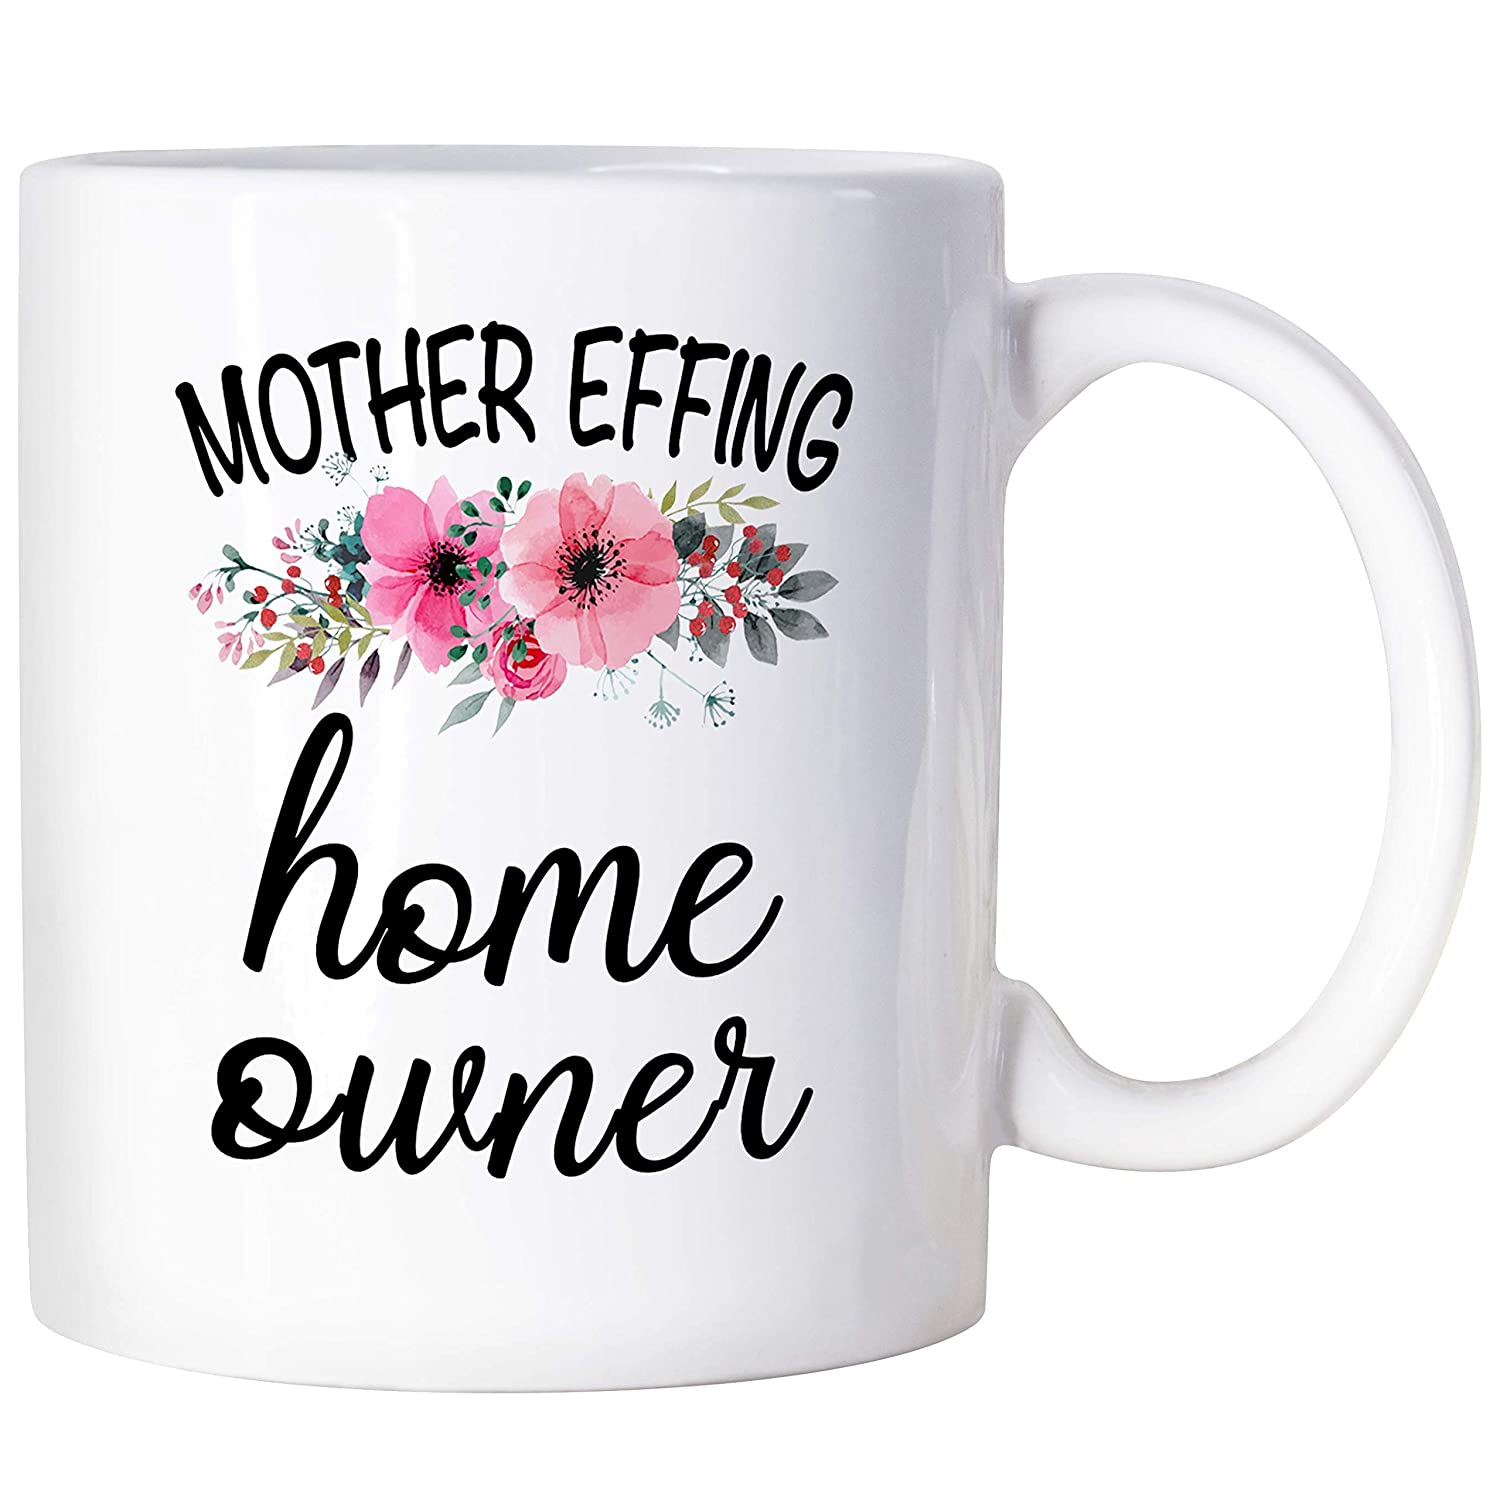 Housewarming Gifts New Homeowner Gifts Mother Effing Homeowner Mug First Home Gifts New Home Gift Ideas For Women Men 11oz Coffee Mugs